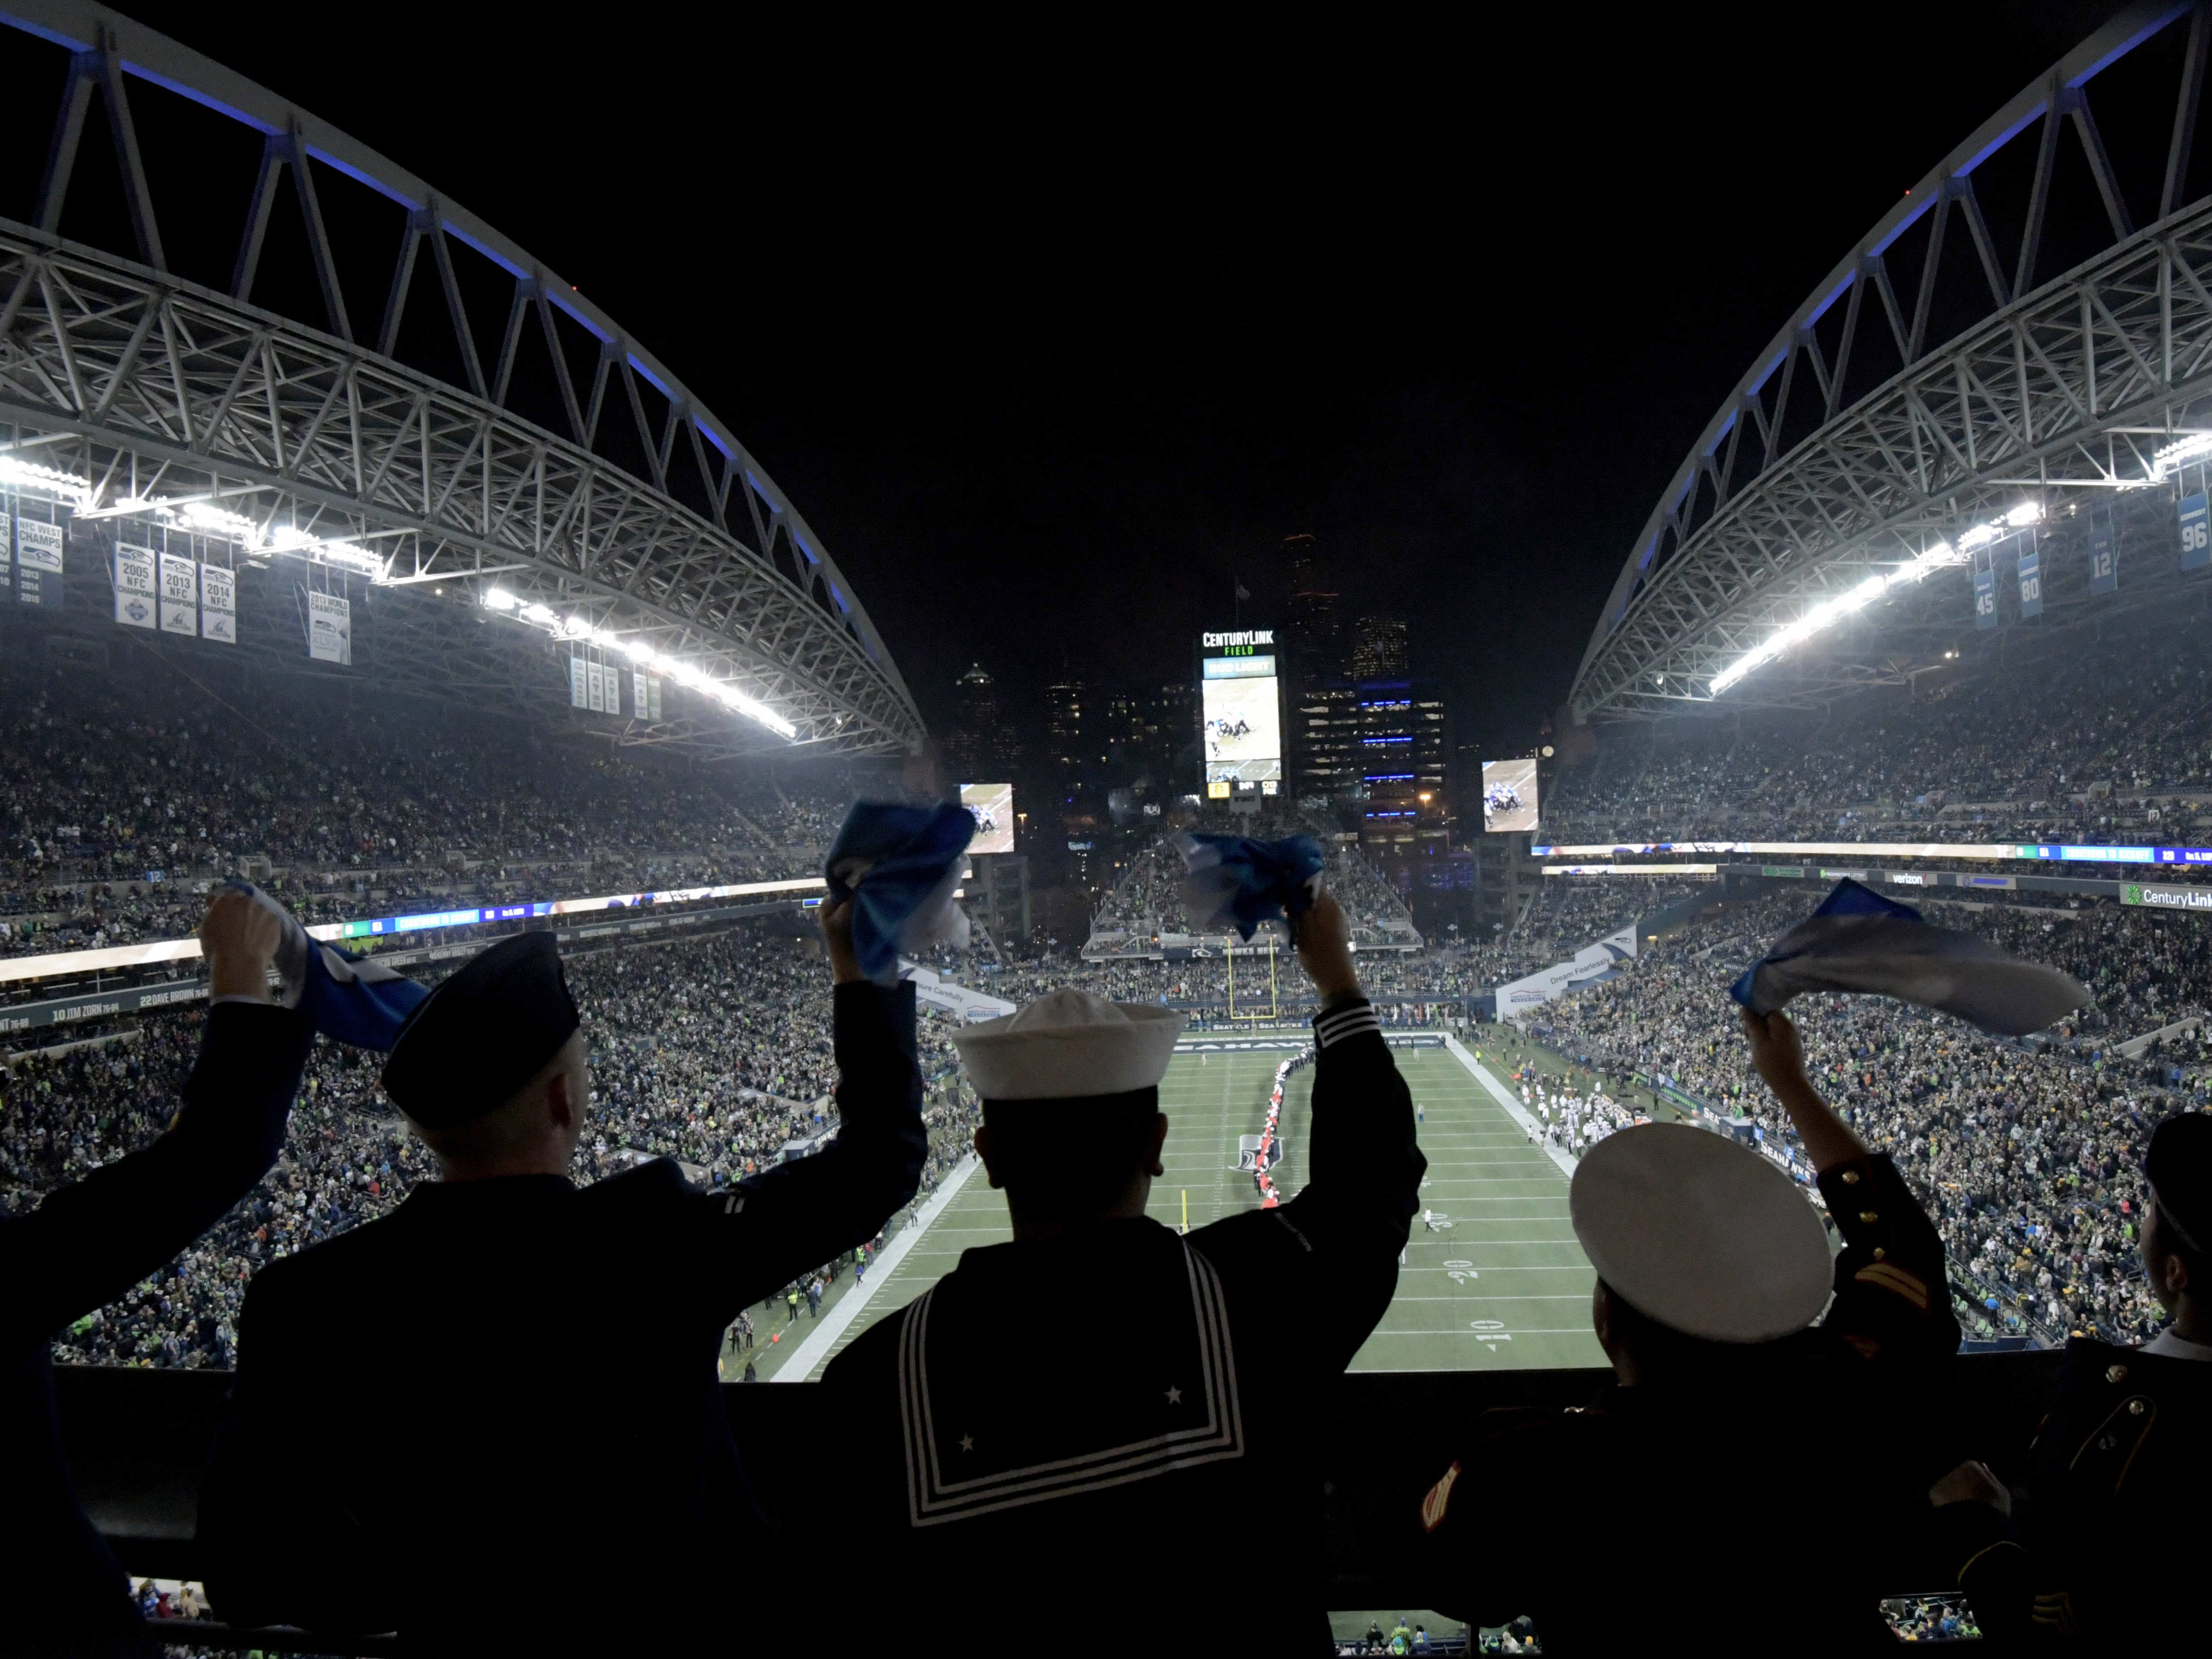 Military members are waving 12th man flags at CenturyLink Field before the national anthem prior to the game between the Green Bay Packers and Seattle Seahawks.